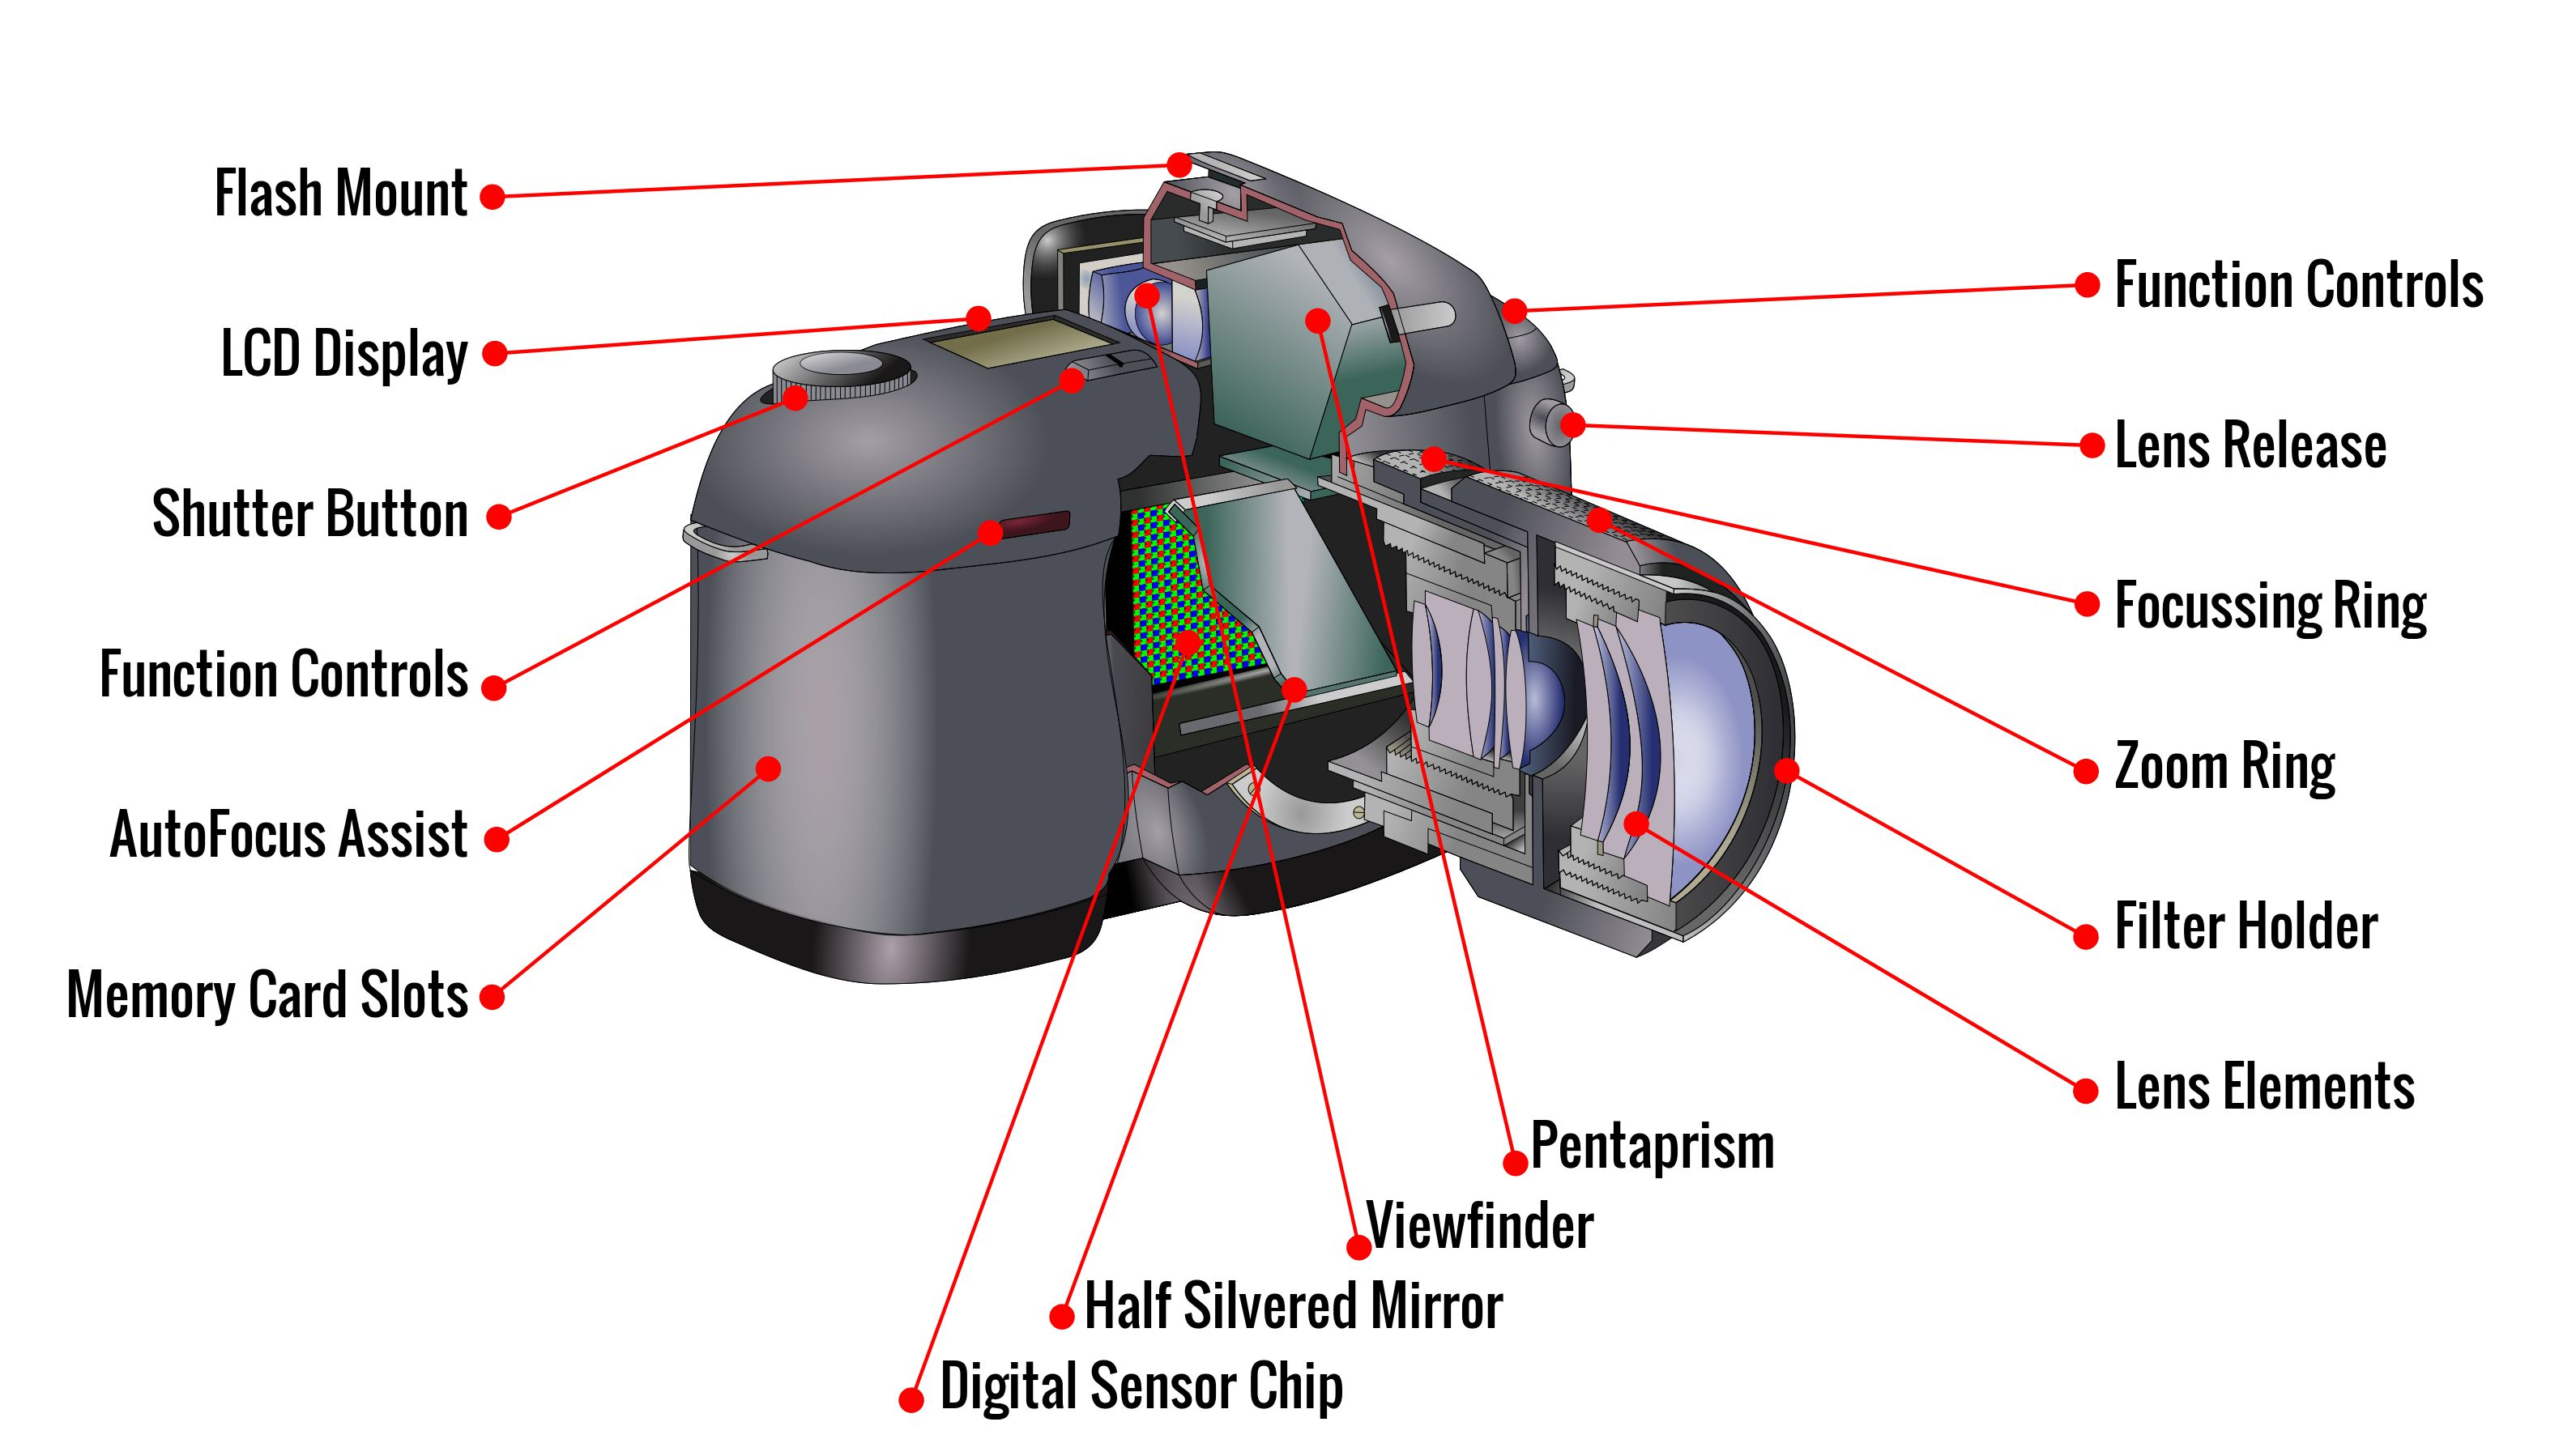 Camera How Dslr Camera Works ulearn photography part of filmphotoacademy com here is a generic camera body and lens the main bulk holds all electronics batteries memory card digital sensor computer chip everythin